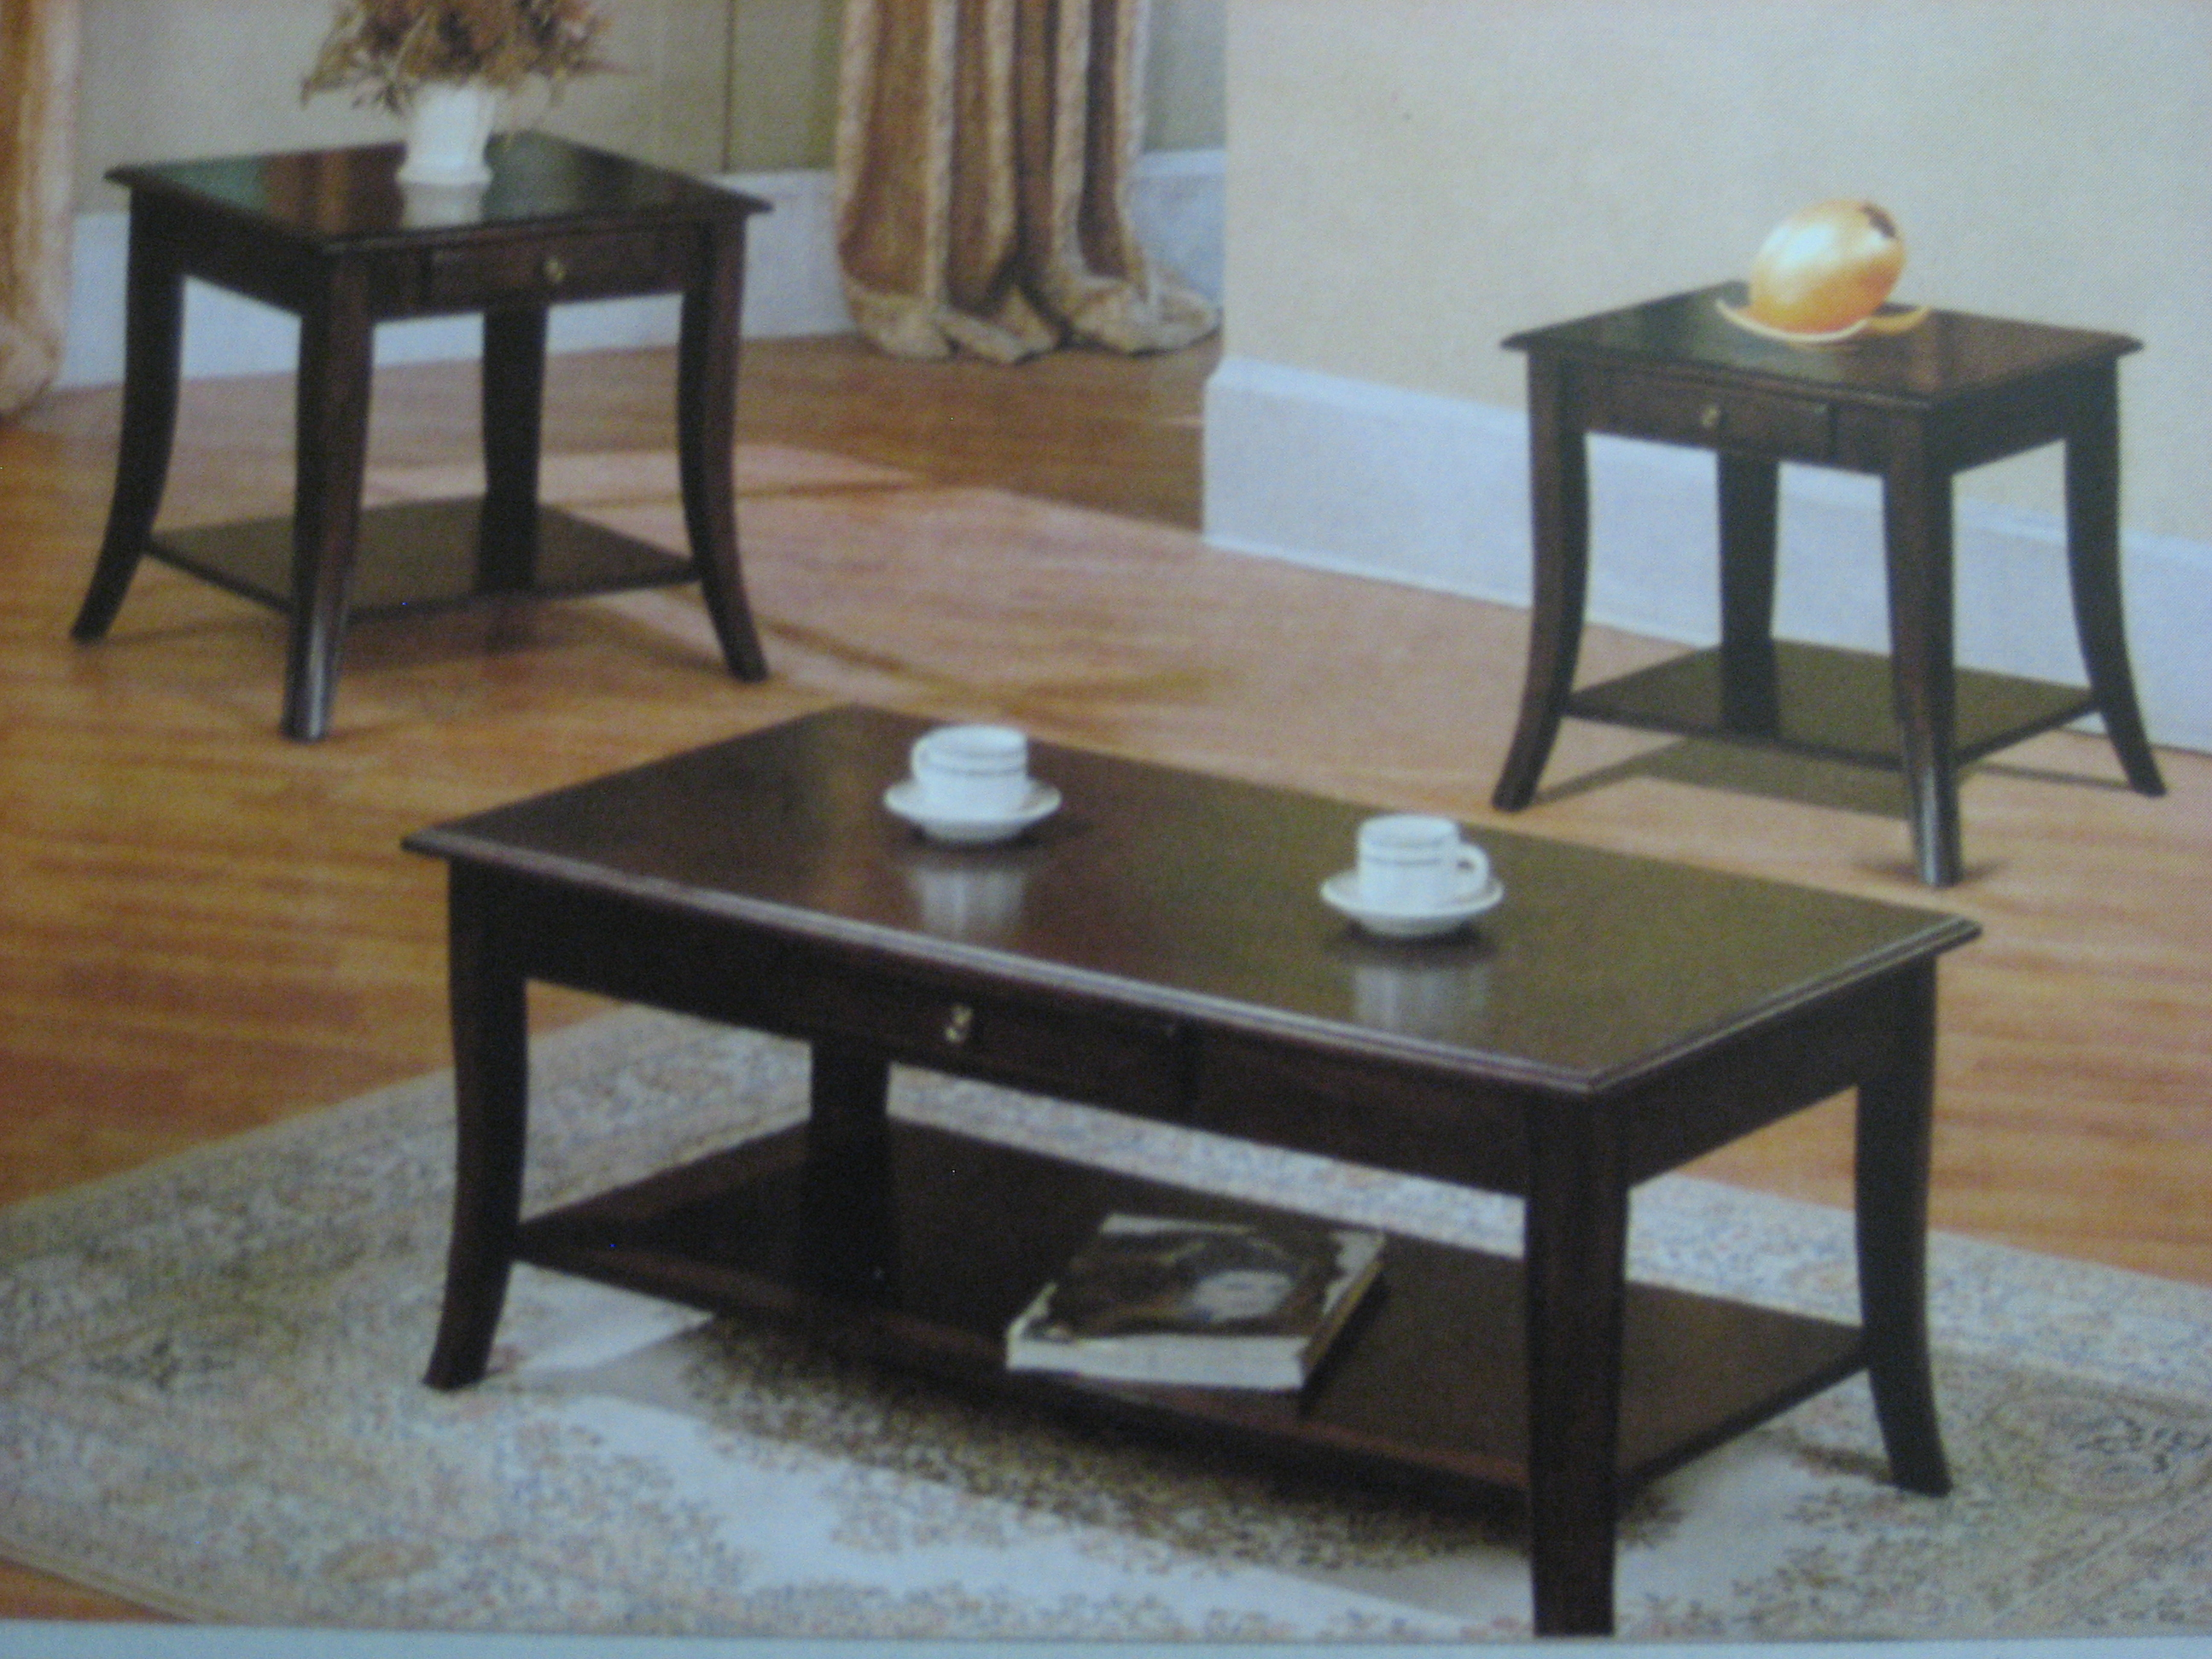 3394 Dark Brown Wood Coffee Table 2 End Tables Set Furniture Outlet Llc In Pickerington Ohio